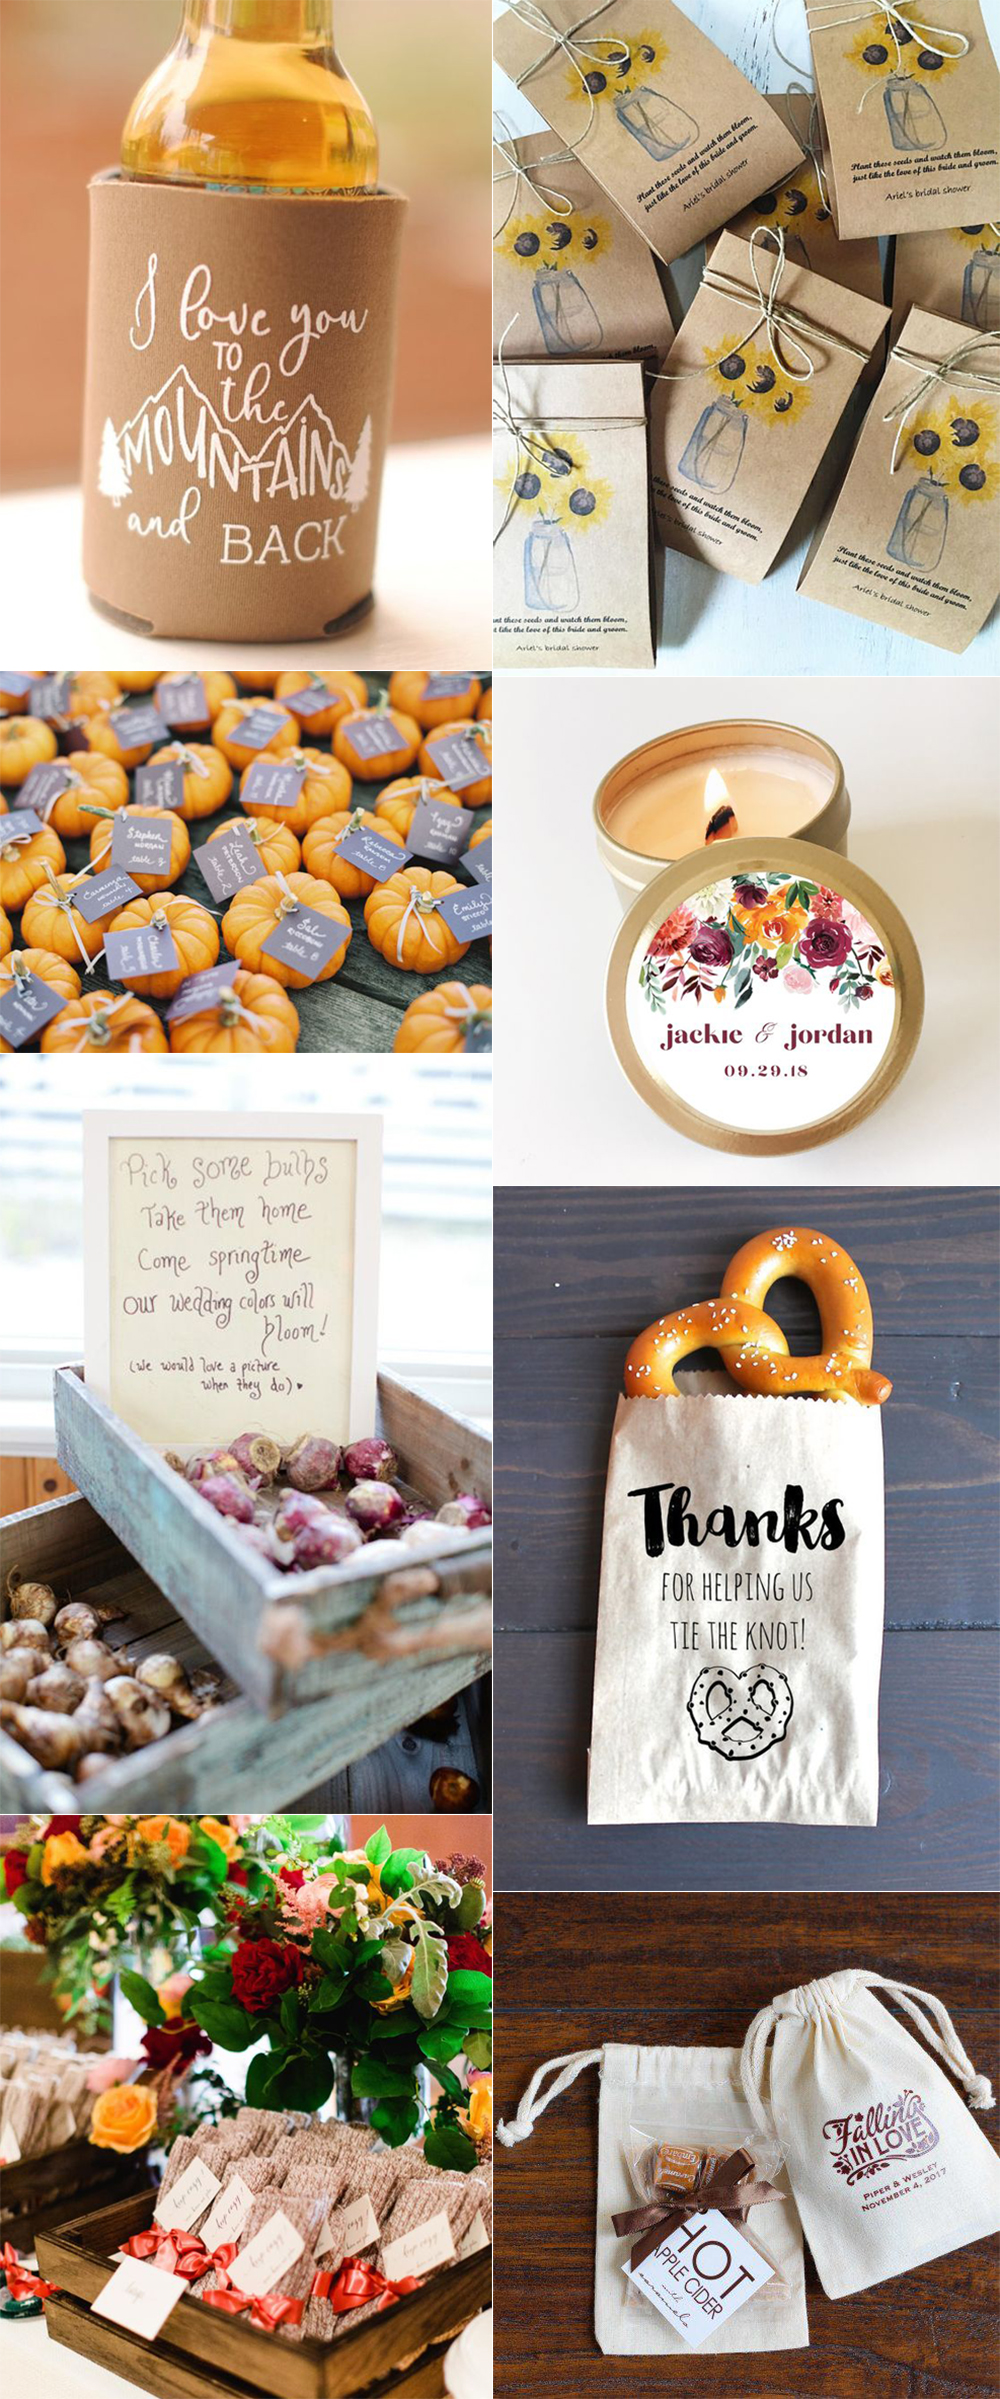 {Image Sources: Beverage Cozy from  You're That Girl Designs ; Sunflower seed flowers from  Seed and Story ; Mini pumpkins featured on  Martha Stewart Weddings ; Candle from  North 29 Candle Co ; Bulbs featured on  Style Me Pretty  - photo by  Erin McGinn ; Pretzel featured on  Crazy for Us ; Socks featured on  Martha Stewart Weddings ; Hot cocoa from  Beau Coup }